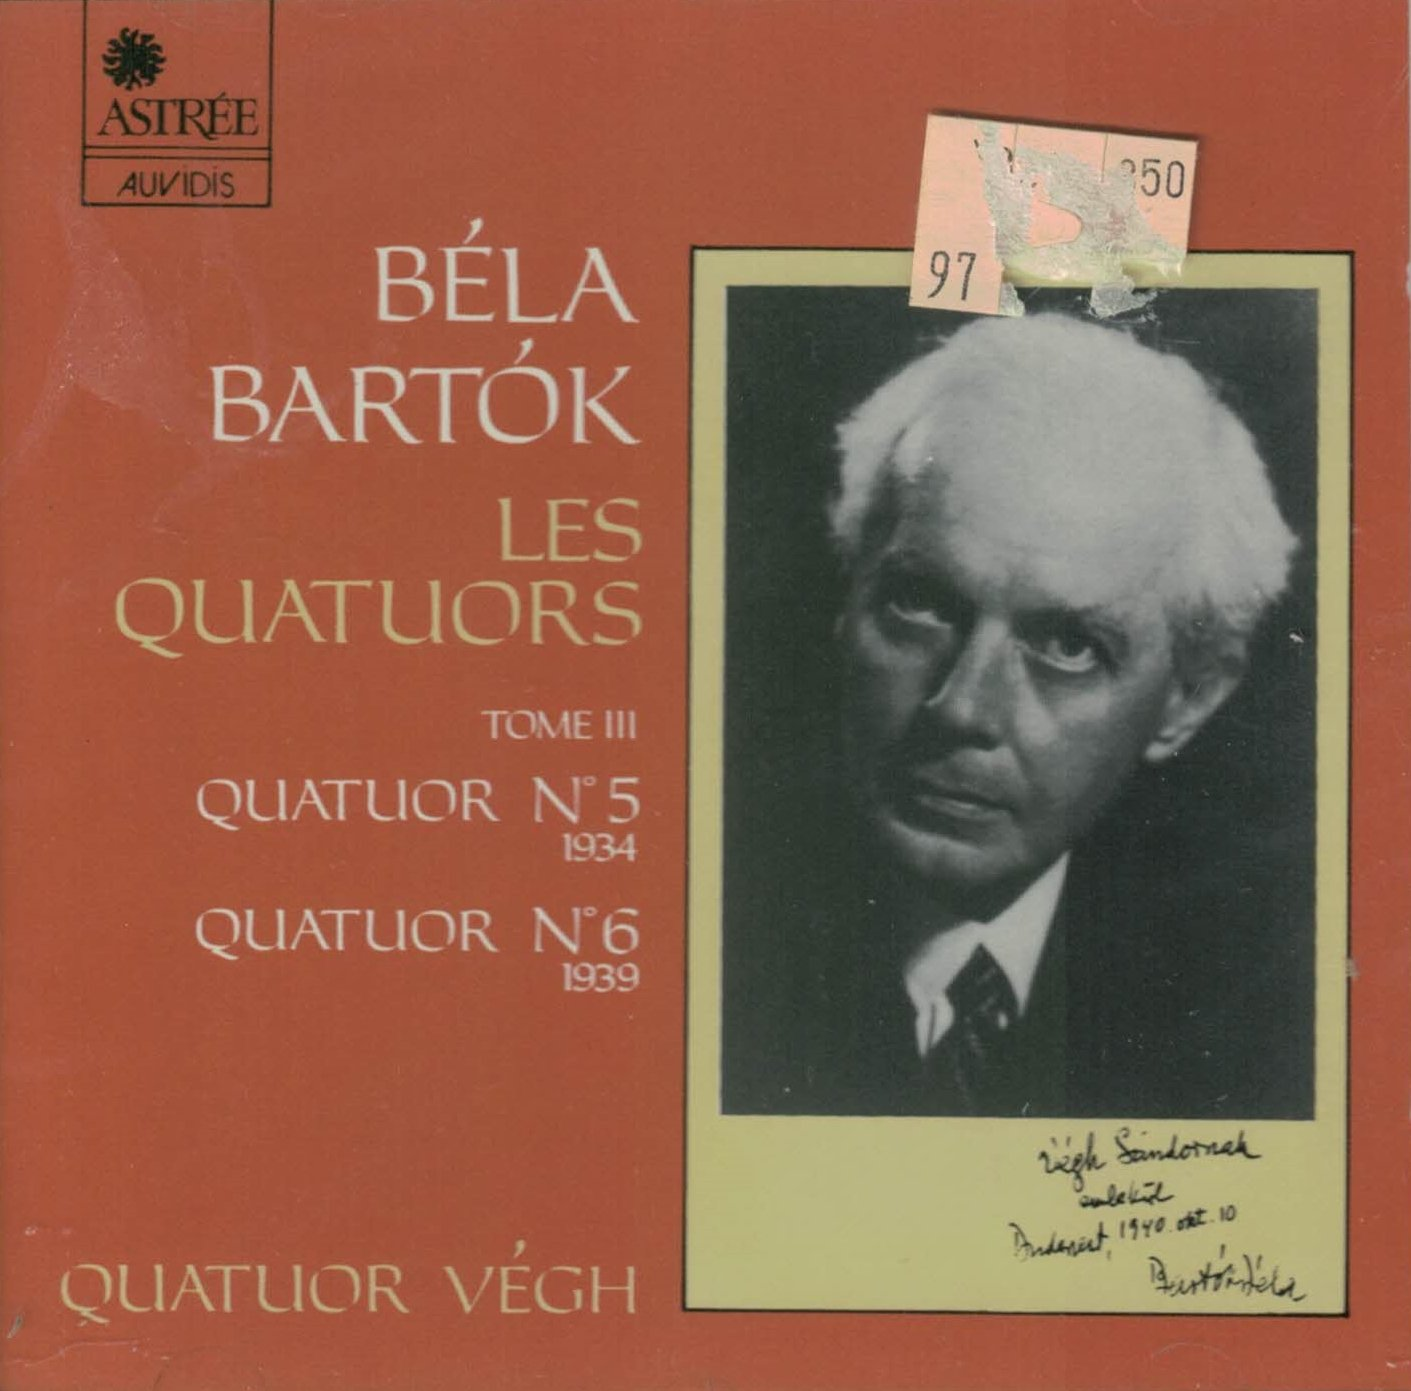 Béla Bartók: The String Quartets, Volume III Quartet No. 5, 1934 / Quartet No. 6, 1939 Végh Quartet